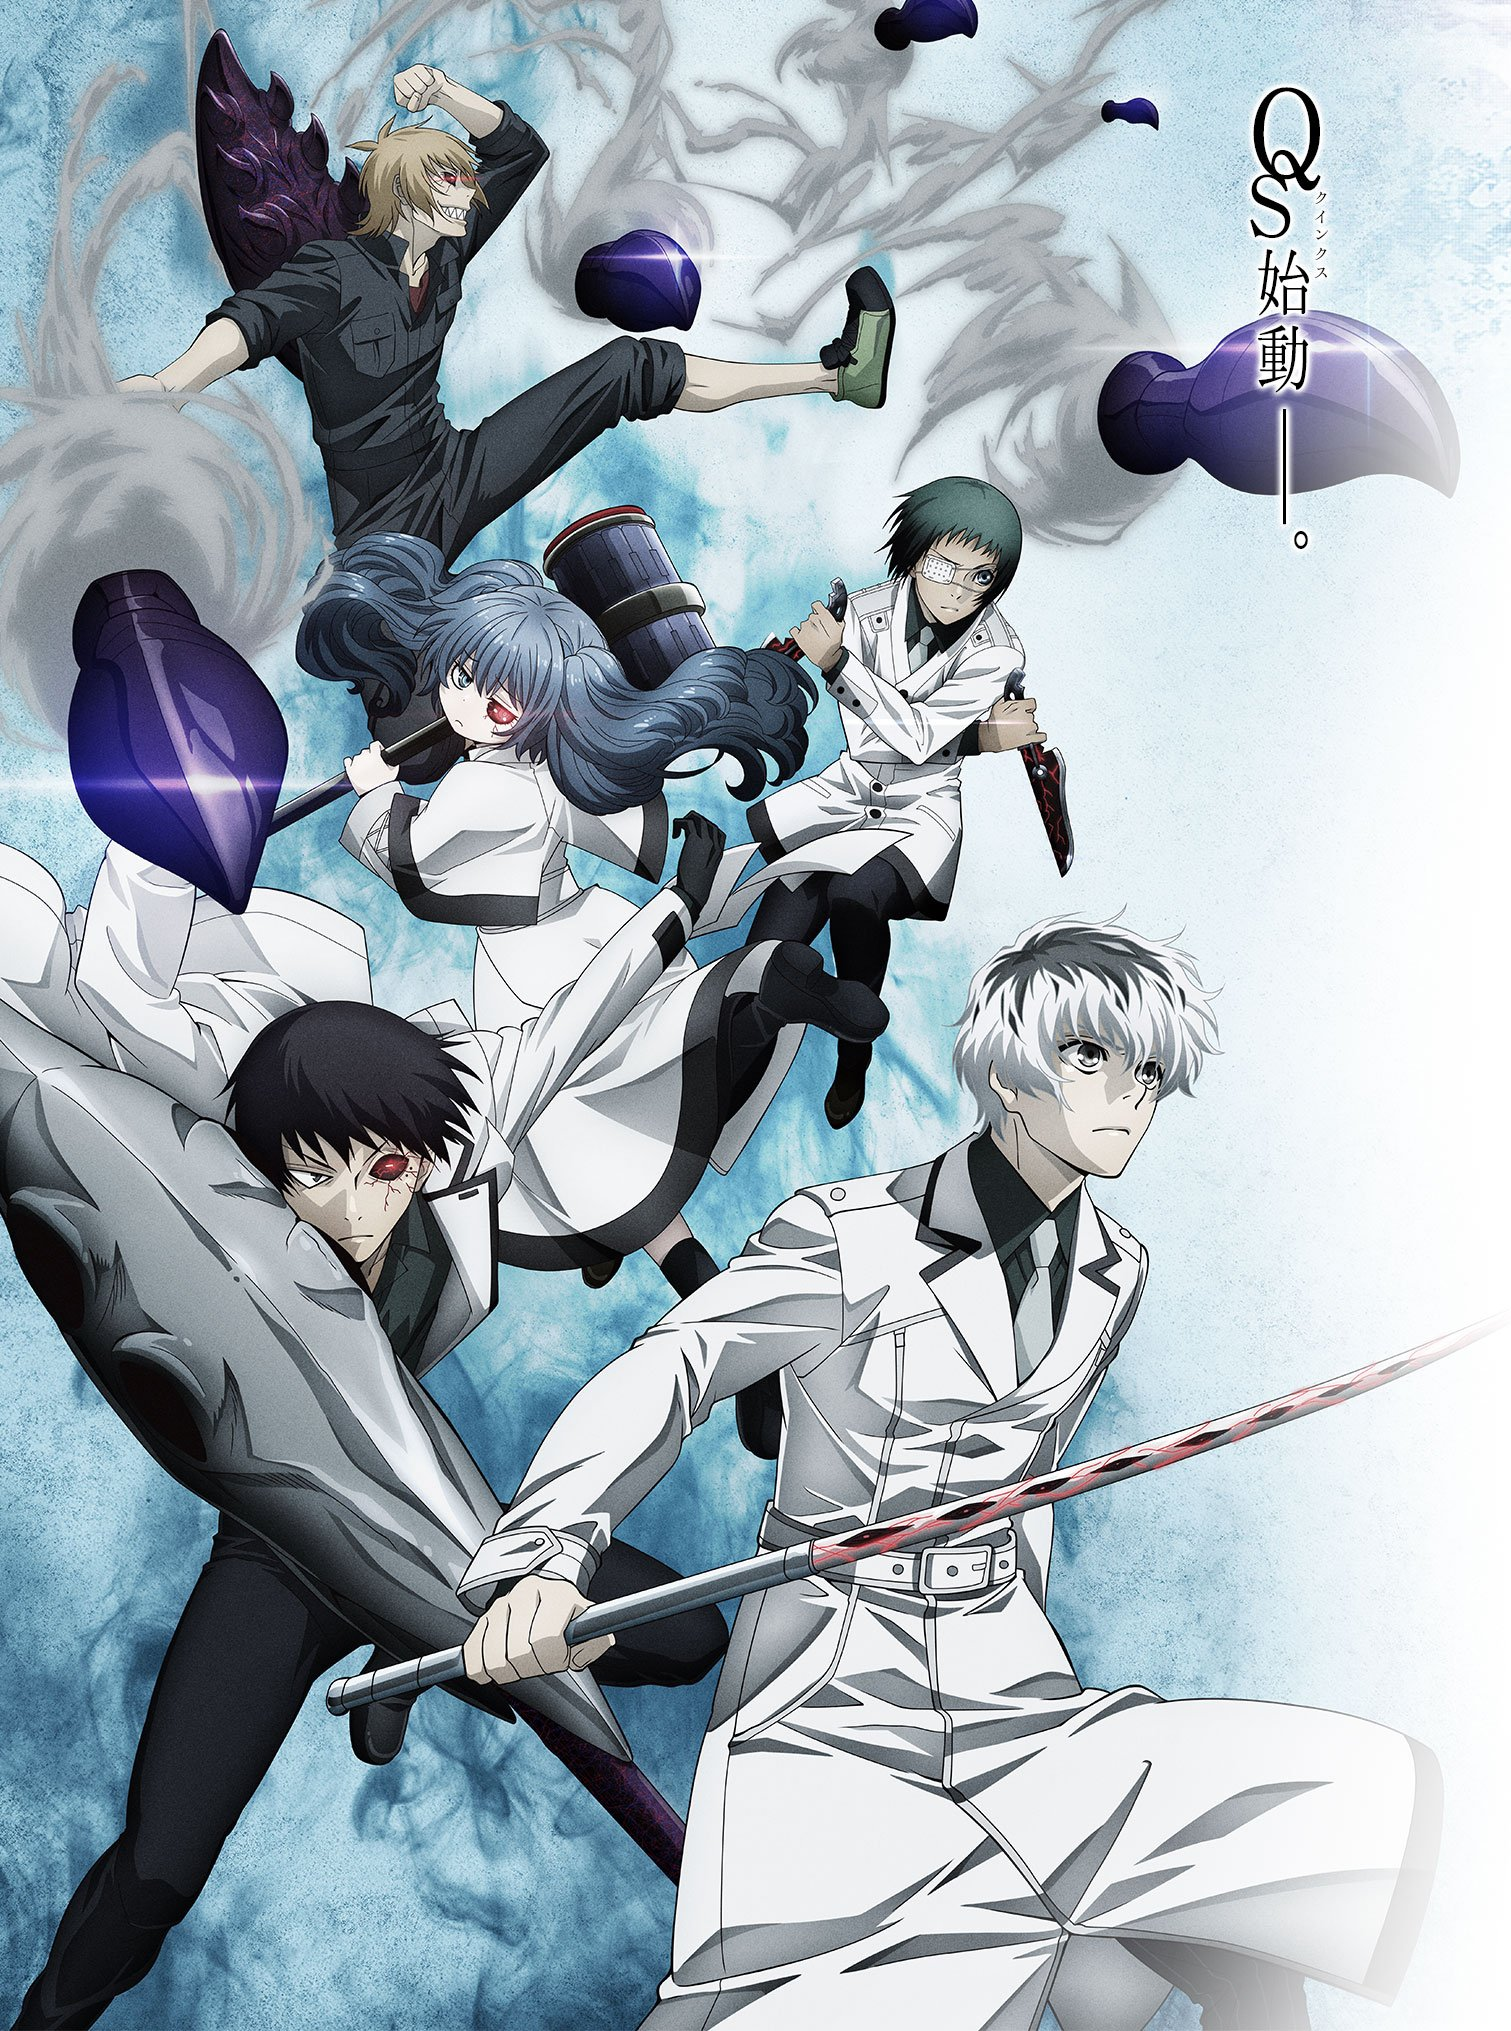 tokyo anime ghoul re crunchyroll limited simulcast acquires confirms game app ghoulre might king